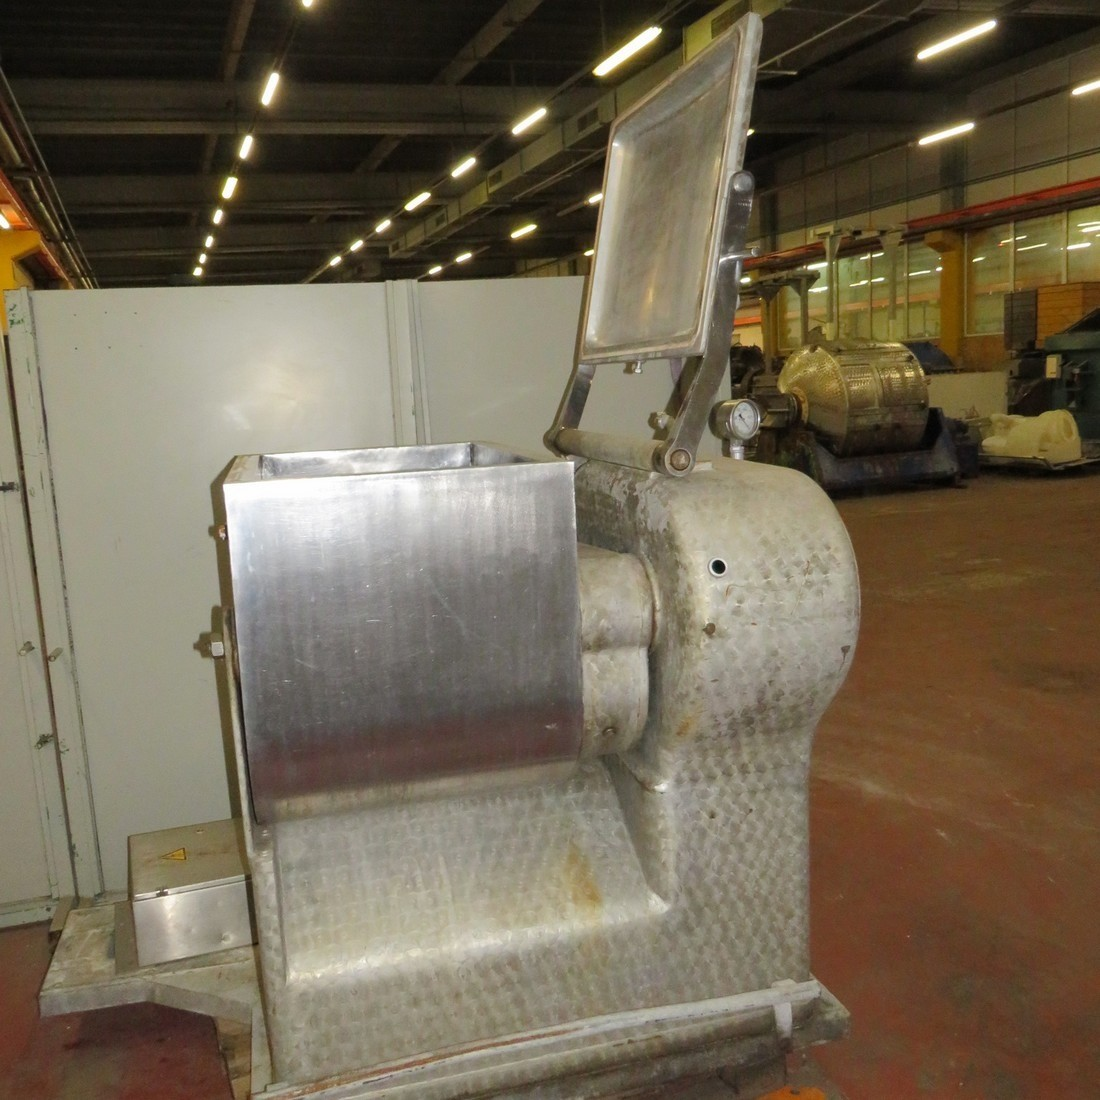 R6MD1208  Stainless steel LASKA double mixer MEV 250 type